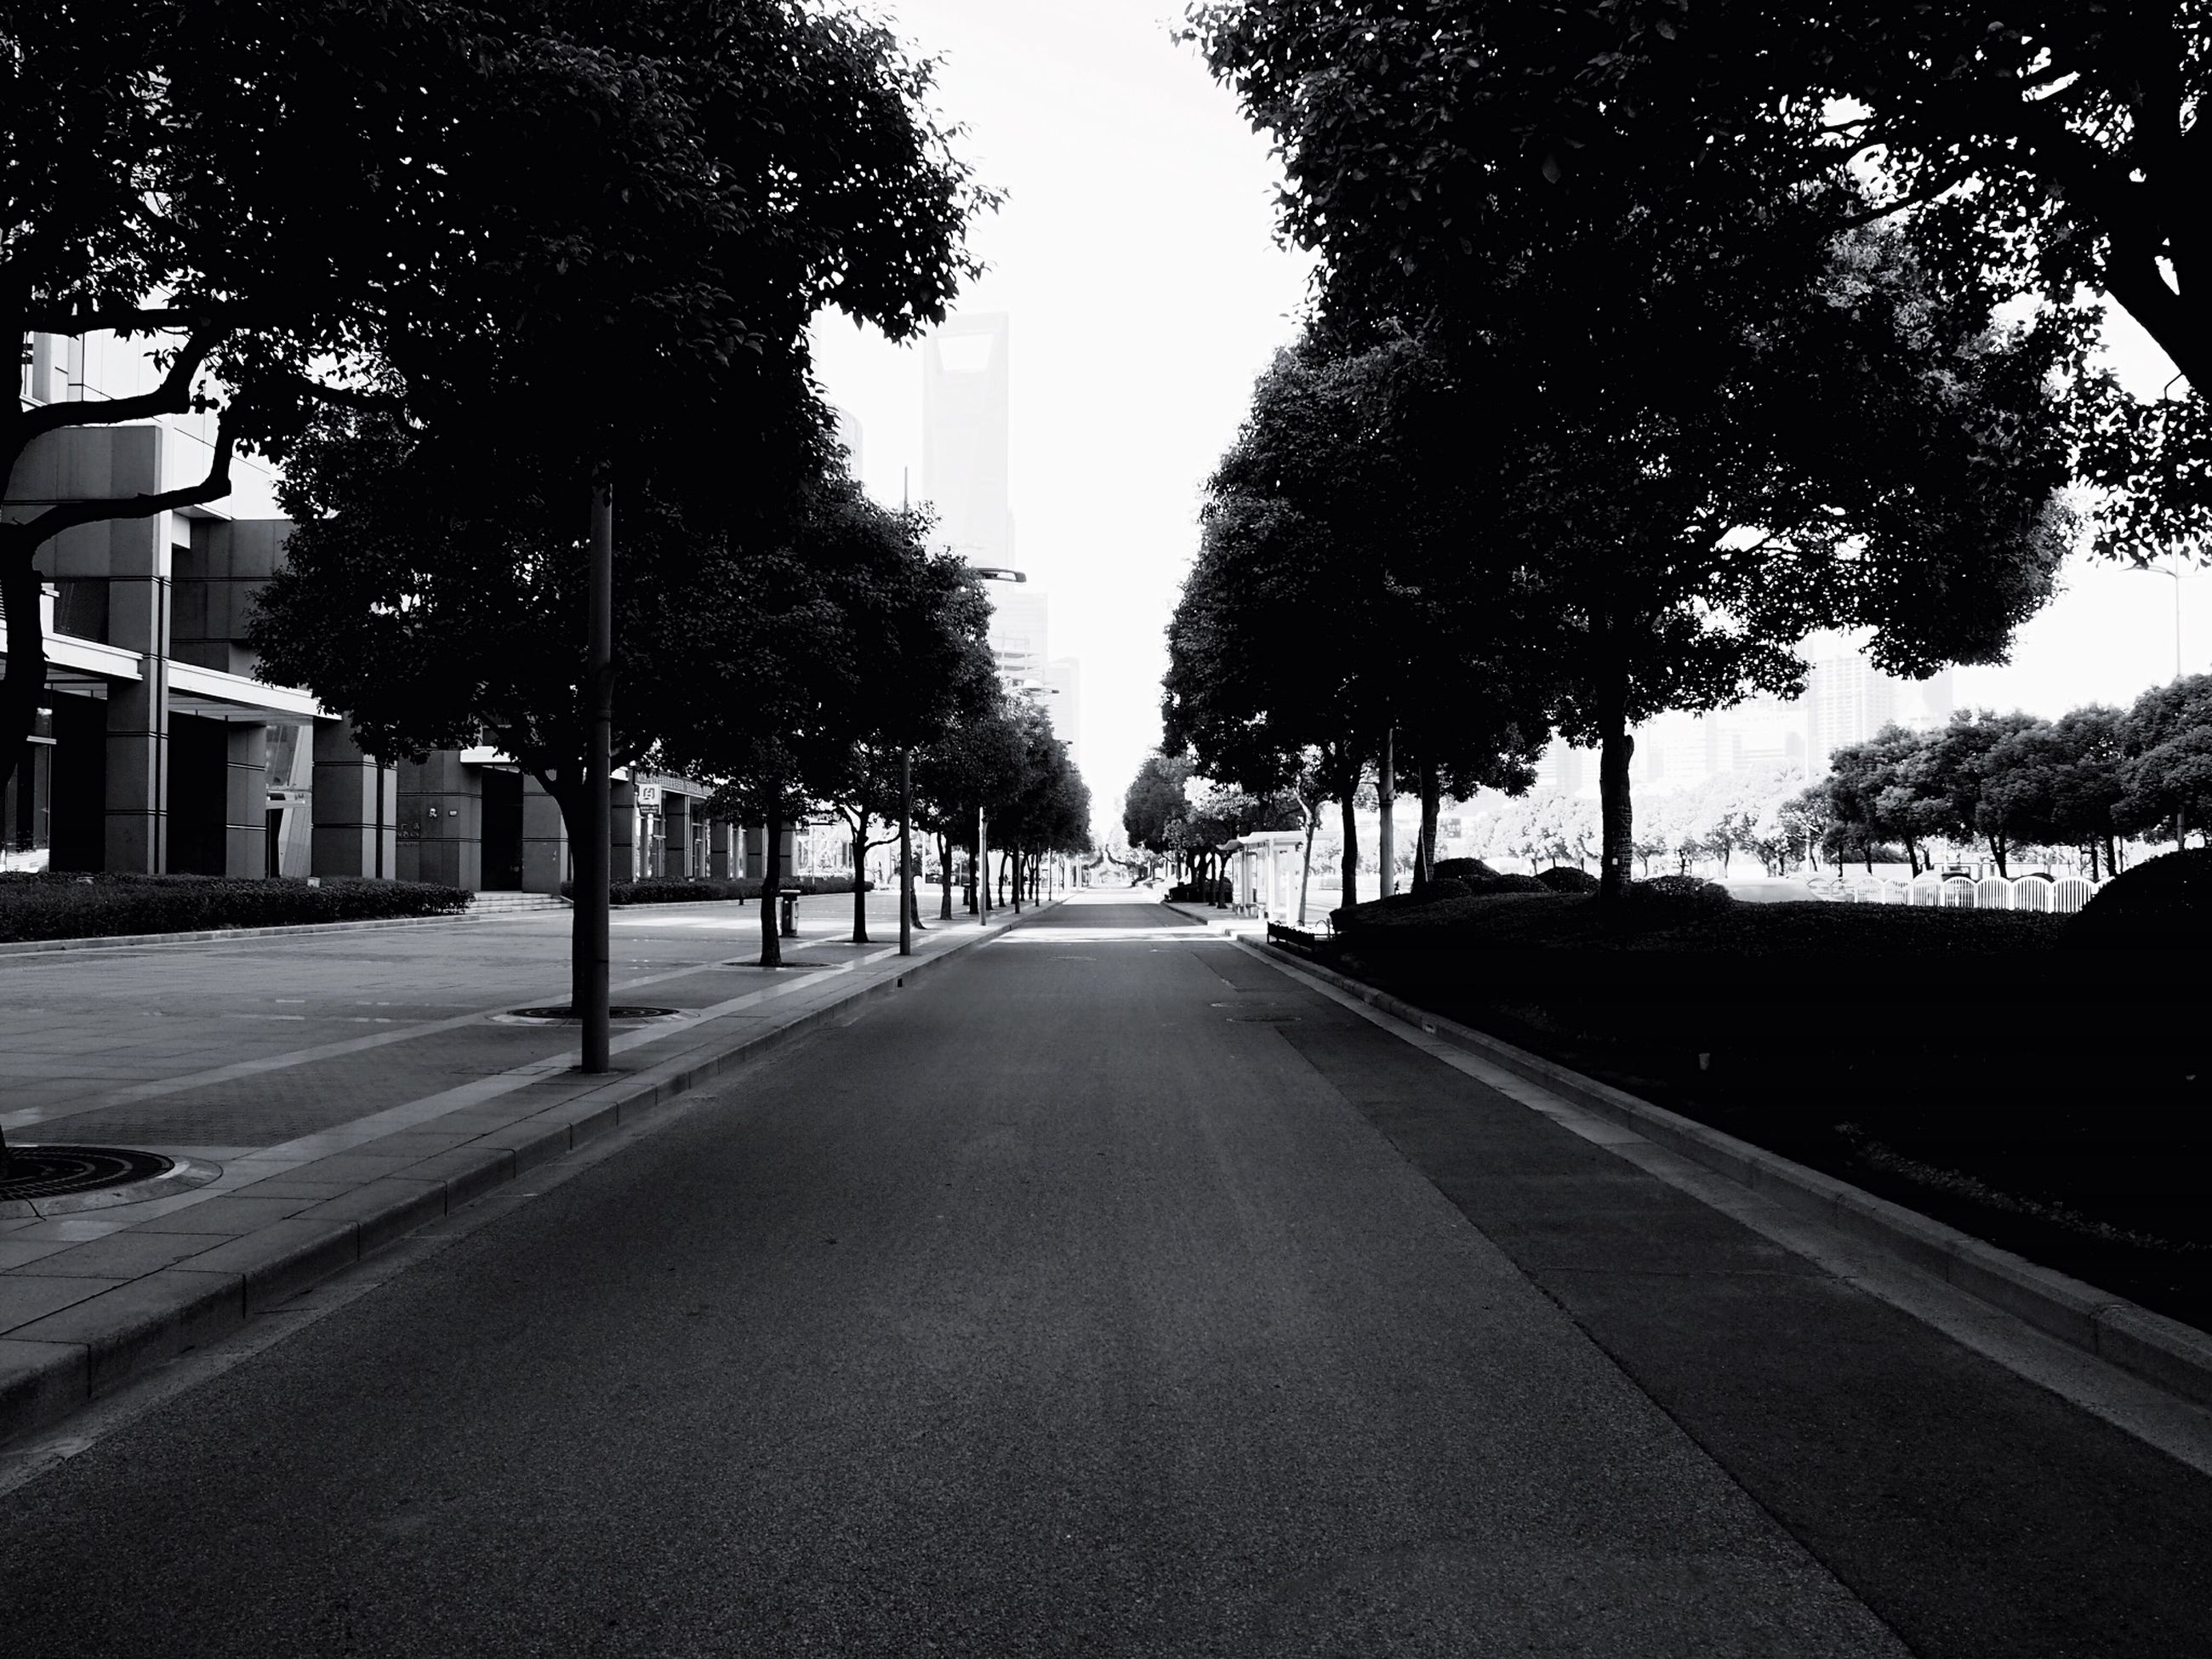 the way forward, tree, diminishing perspective, transportation, vanishing point, road, treelined, street, road marking, empty, long, sky, empty road, building exterior, incidental people, outdoors, built structure, city, in a row, street light